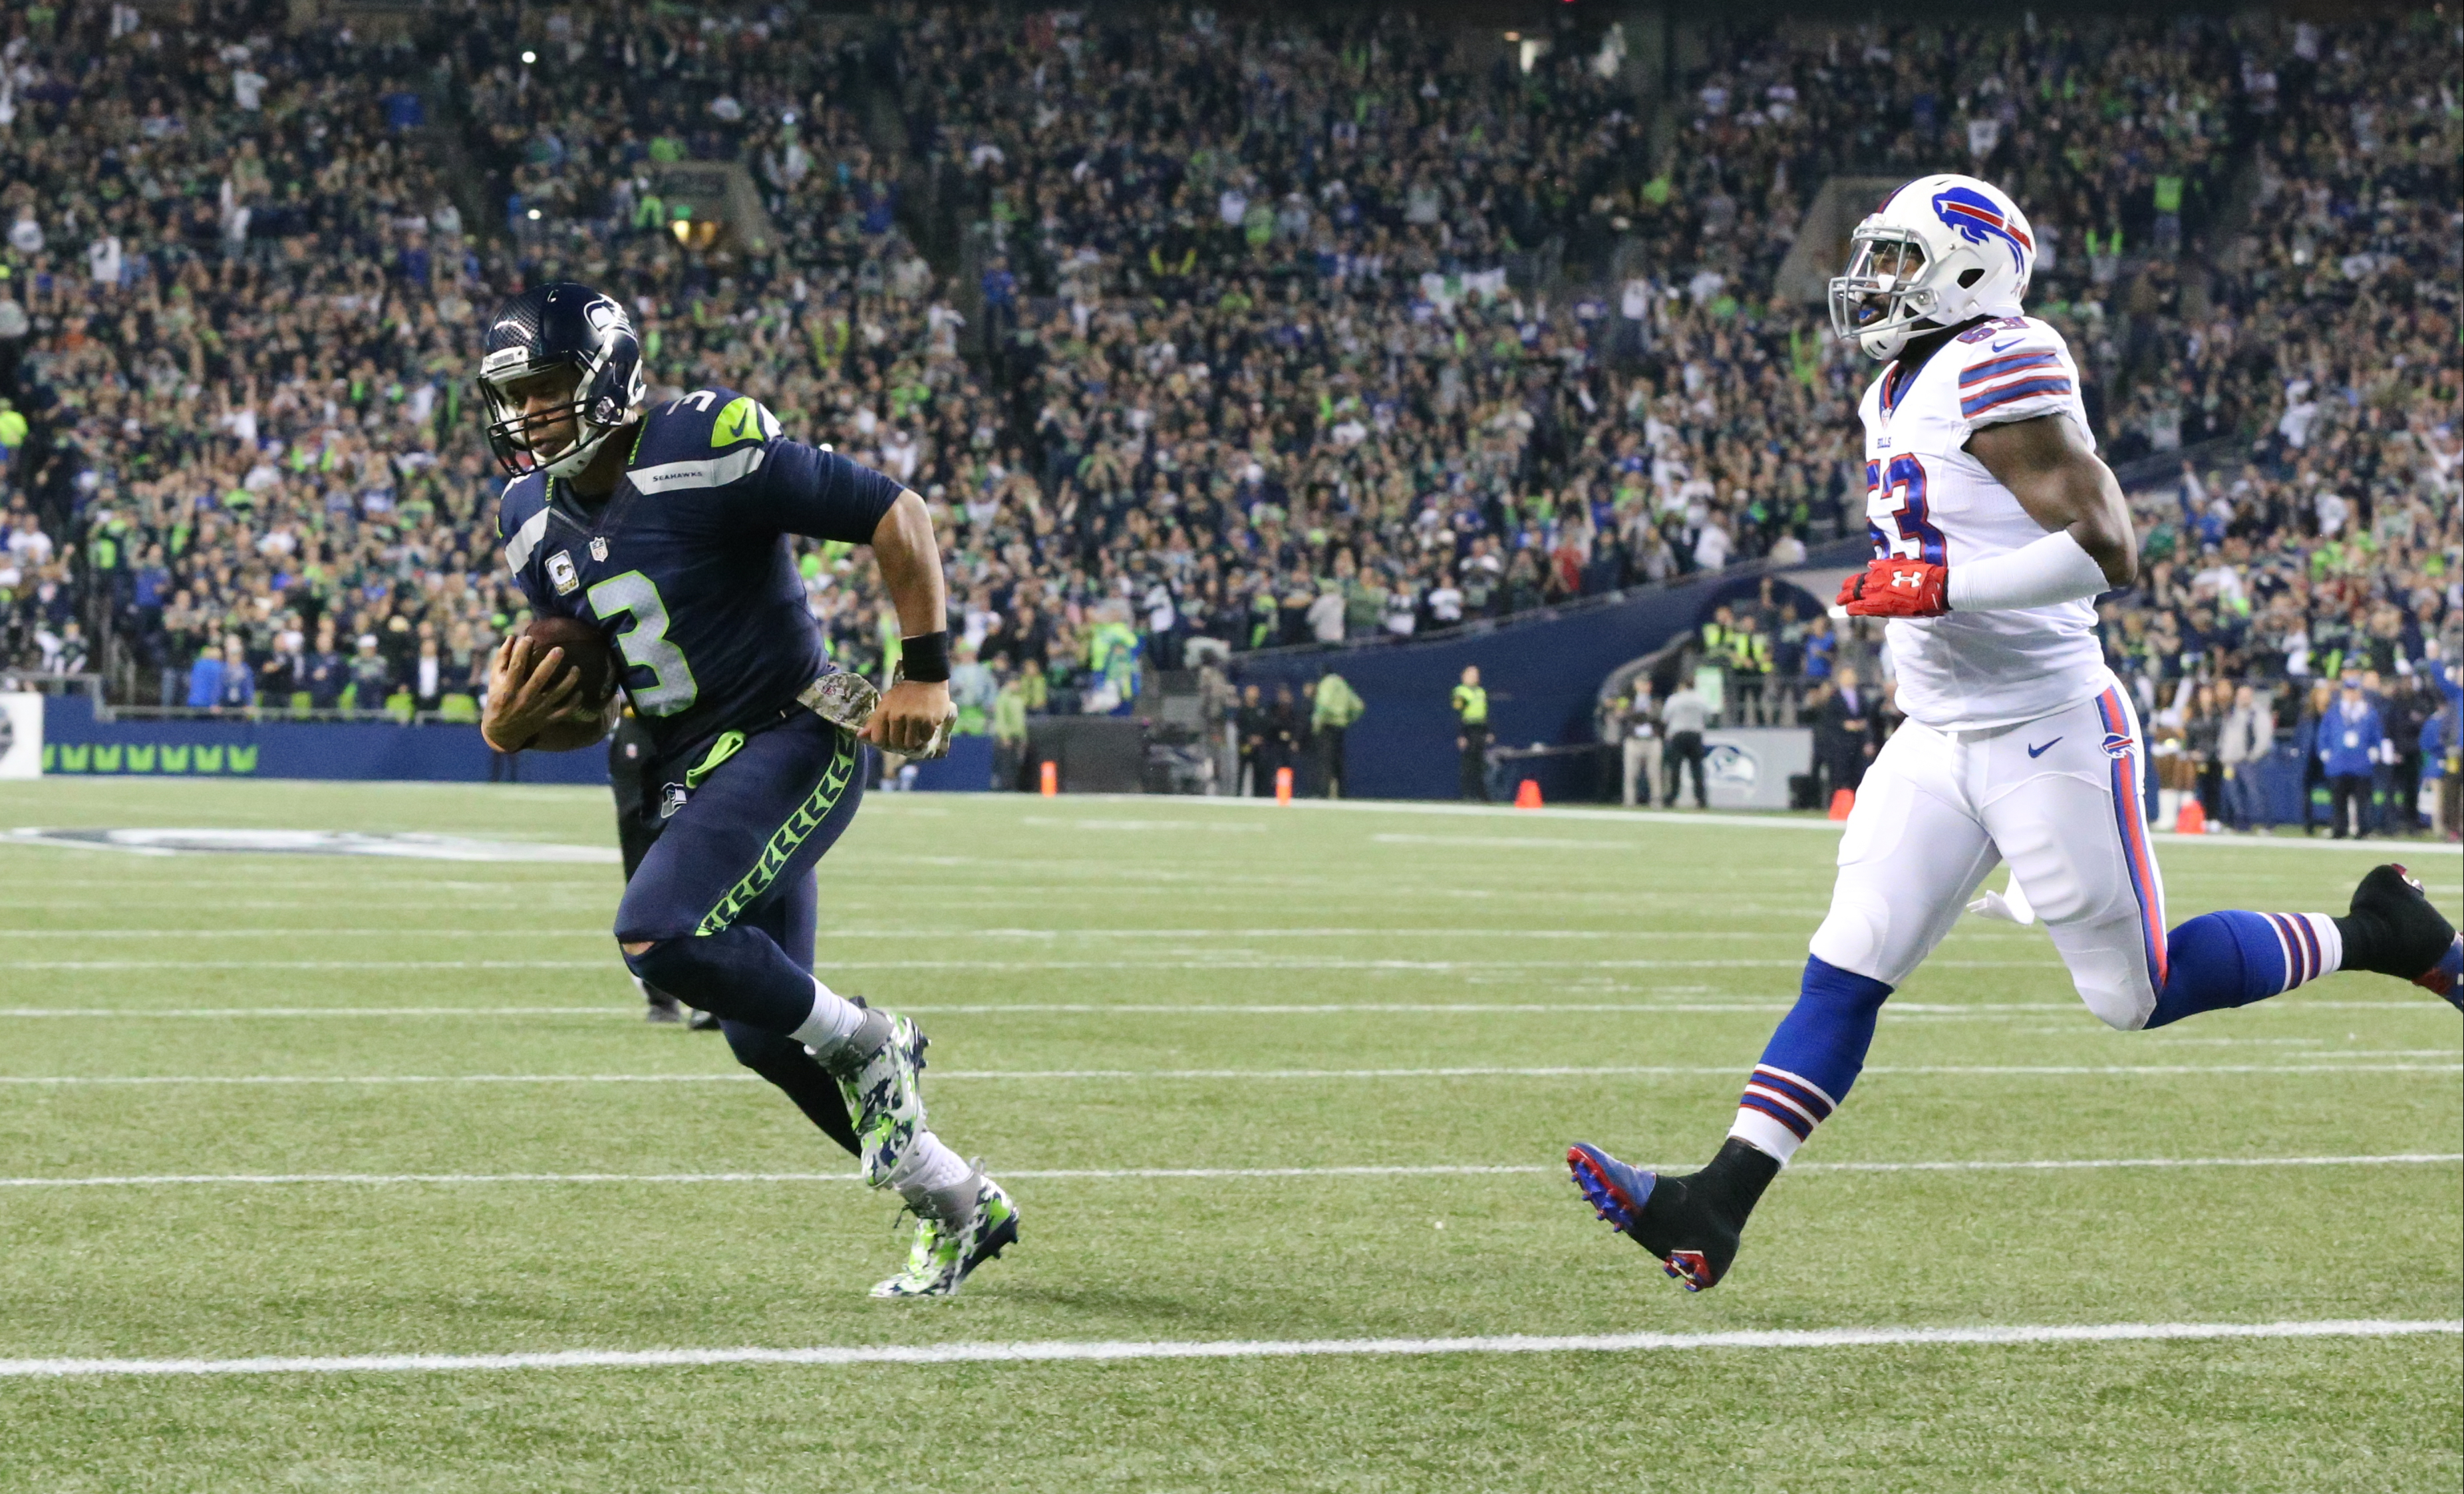 Seattle Seahawks quarterback Russell Wilson (3) runs for a touchdown as he is chased by Buffalo Bills inside linebacker Preston Brown (52) in the first quarter of a game at CenturyLink Field in Seattle on Monday, Nov.  7, 2016.  (James P. McCoy/Buffalo News)